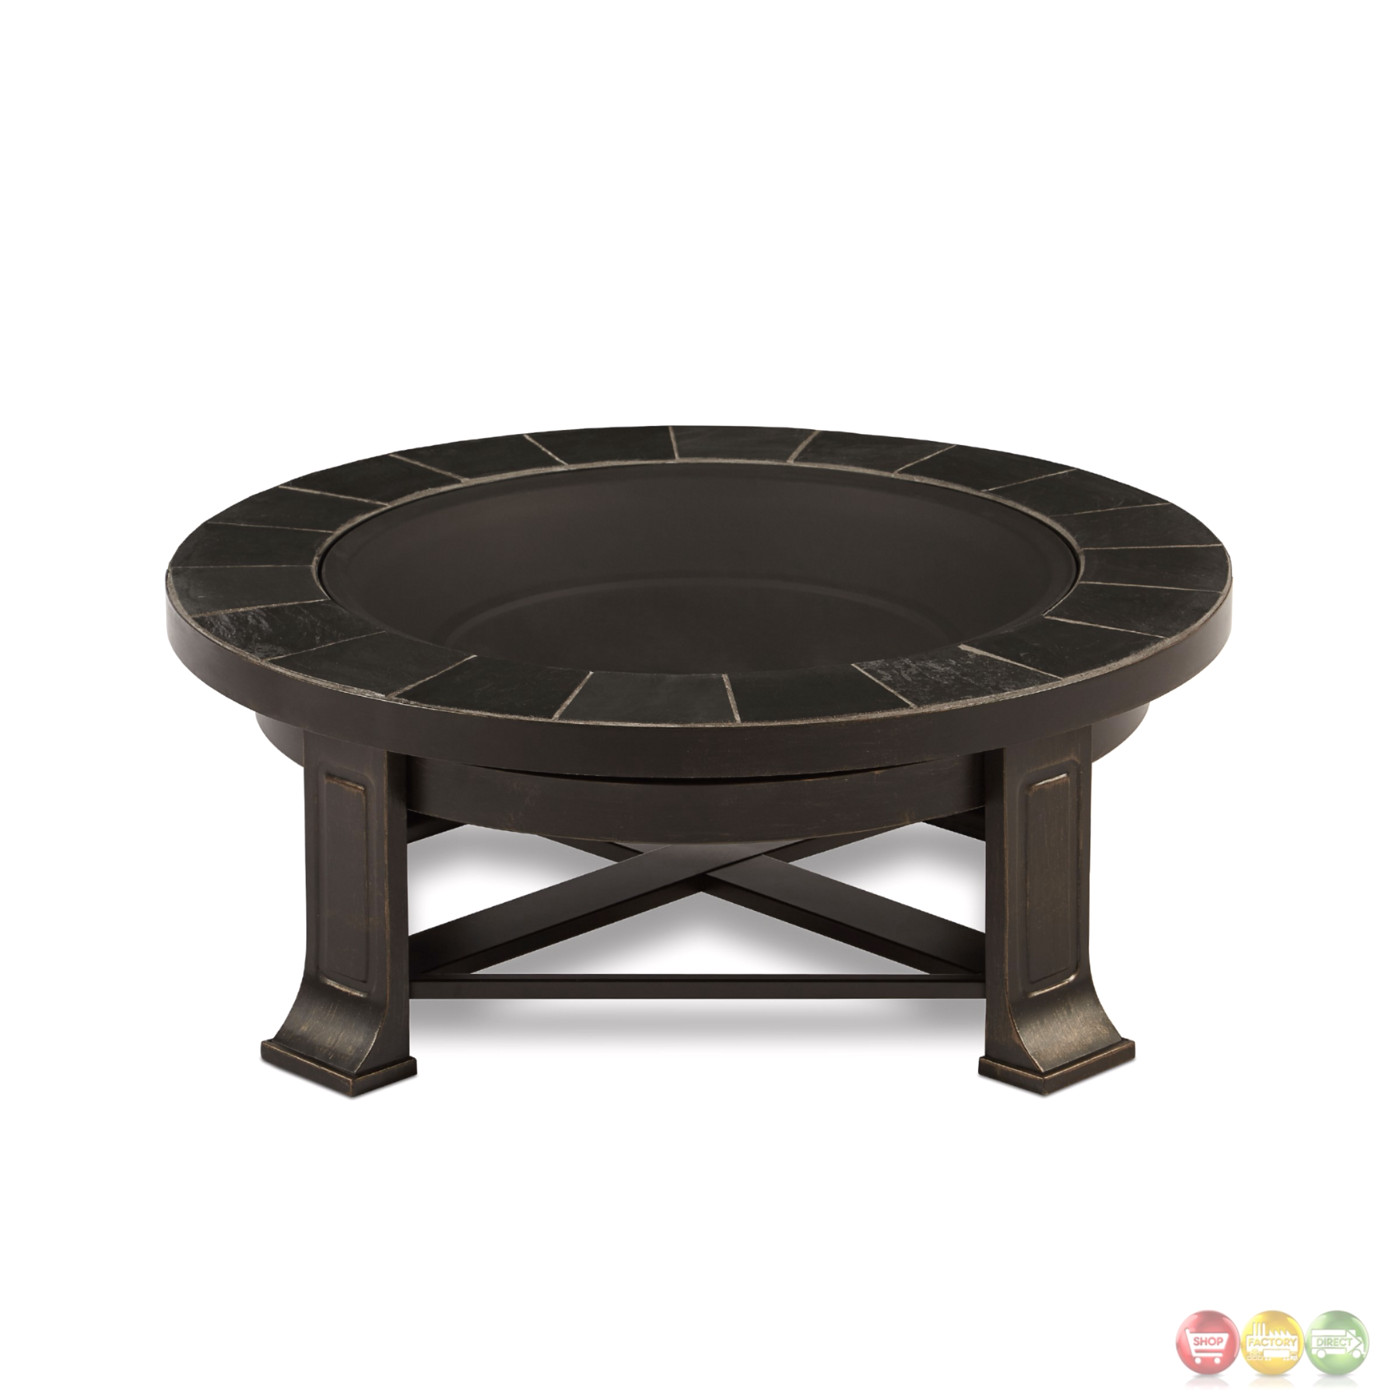 Edwards outdoor wood burning 34 round fire pit with gray tile for How to build a round fire pit